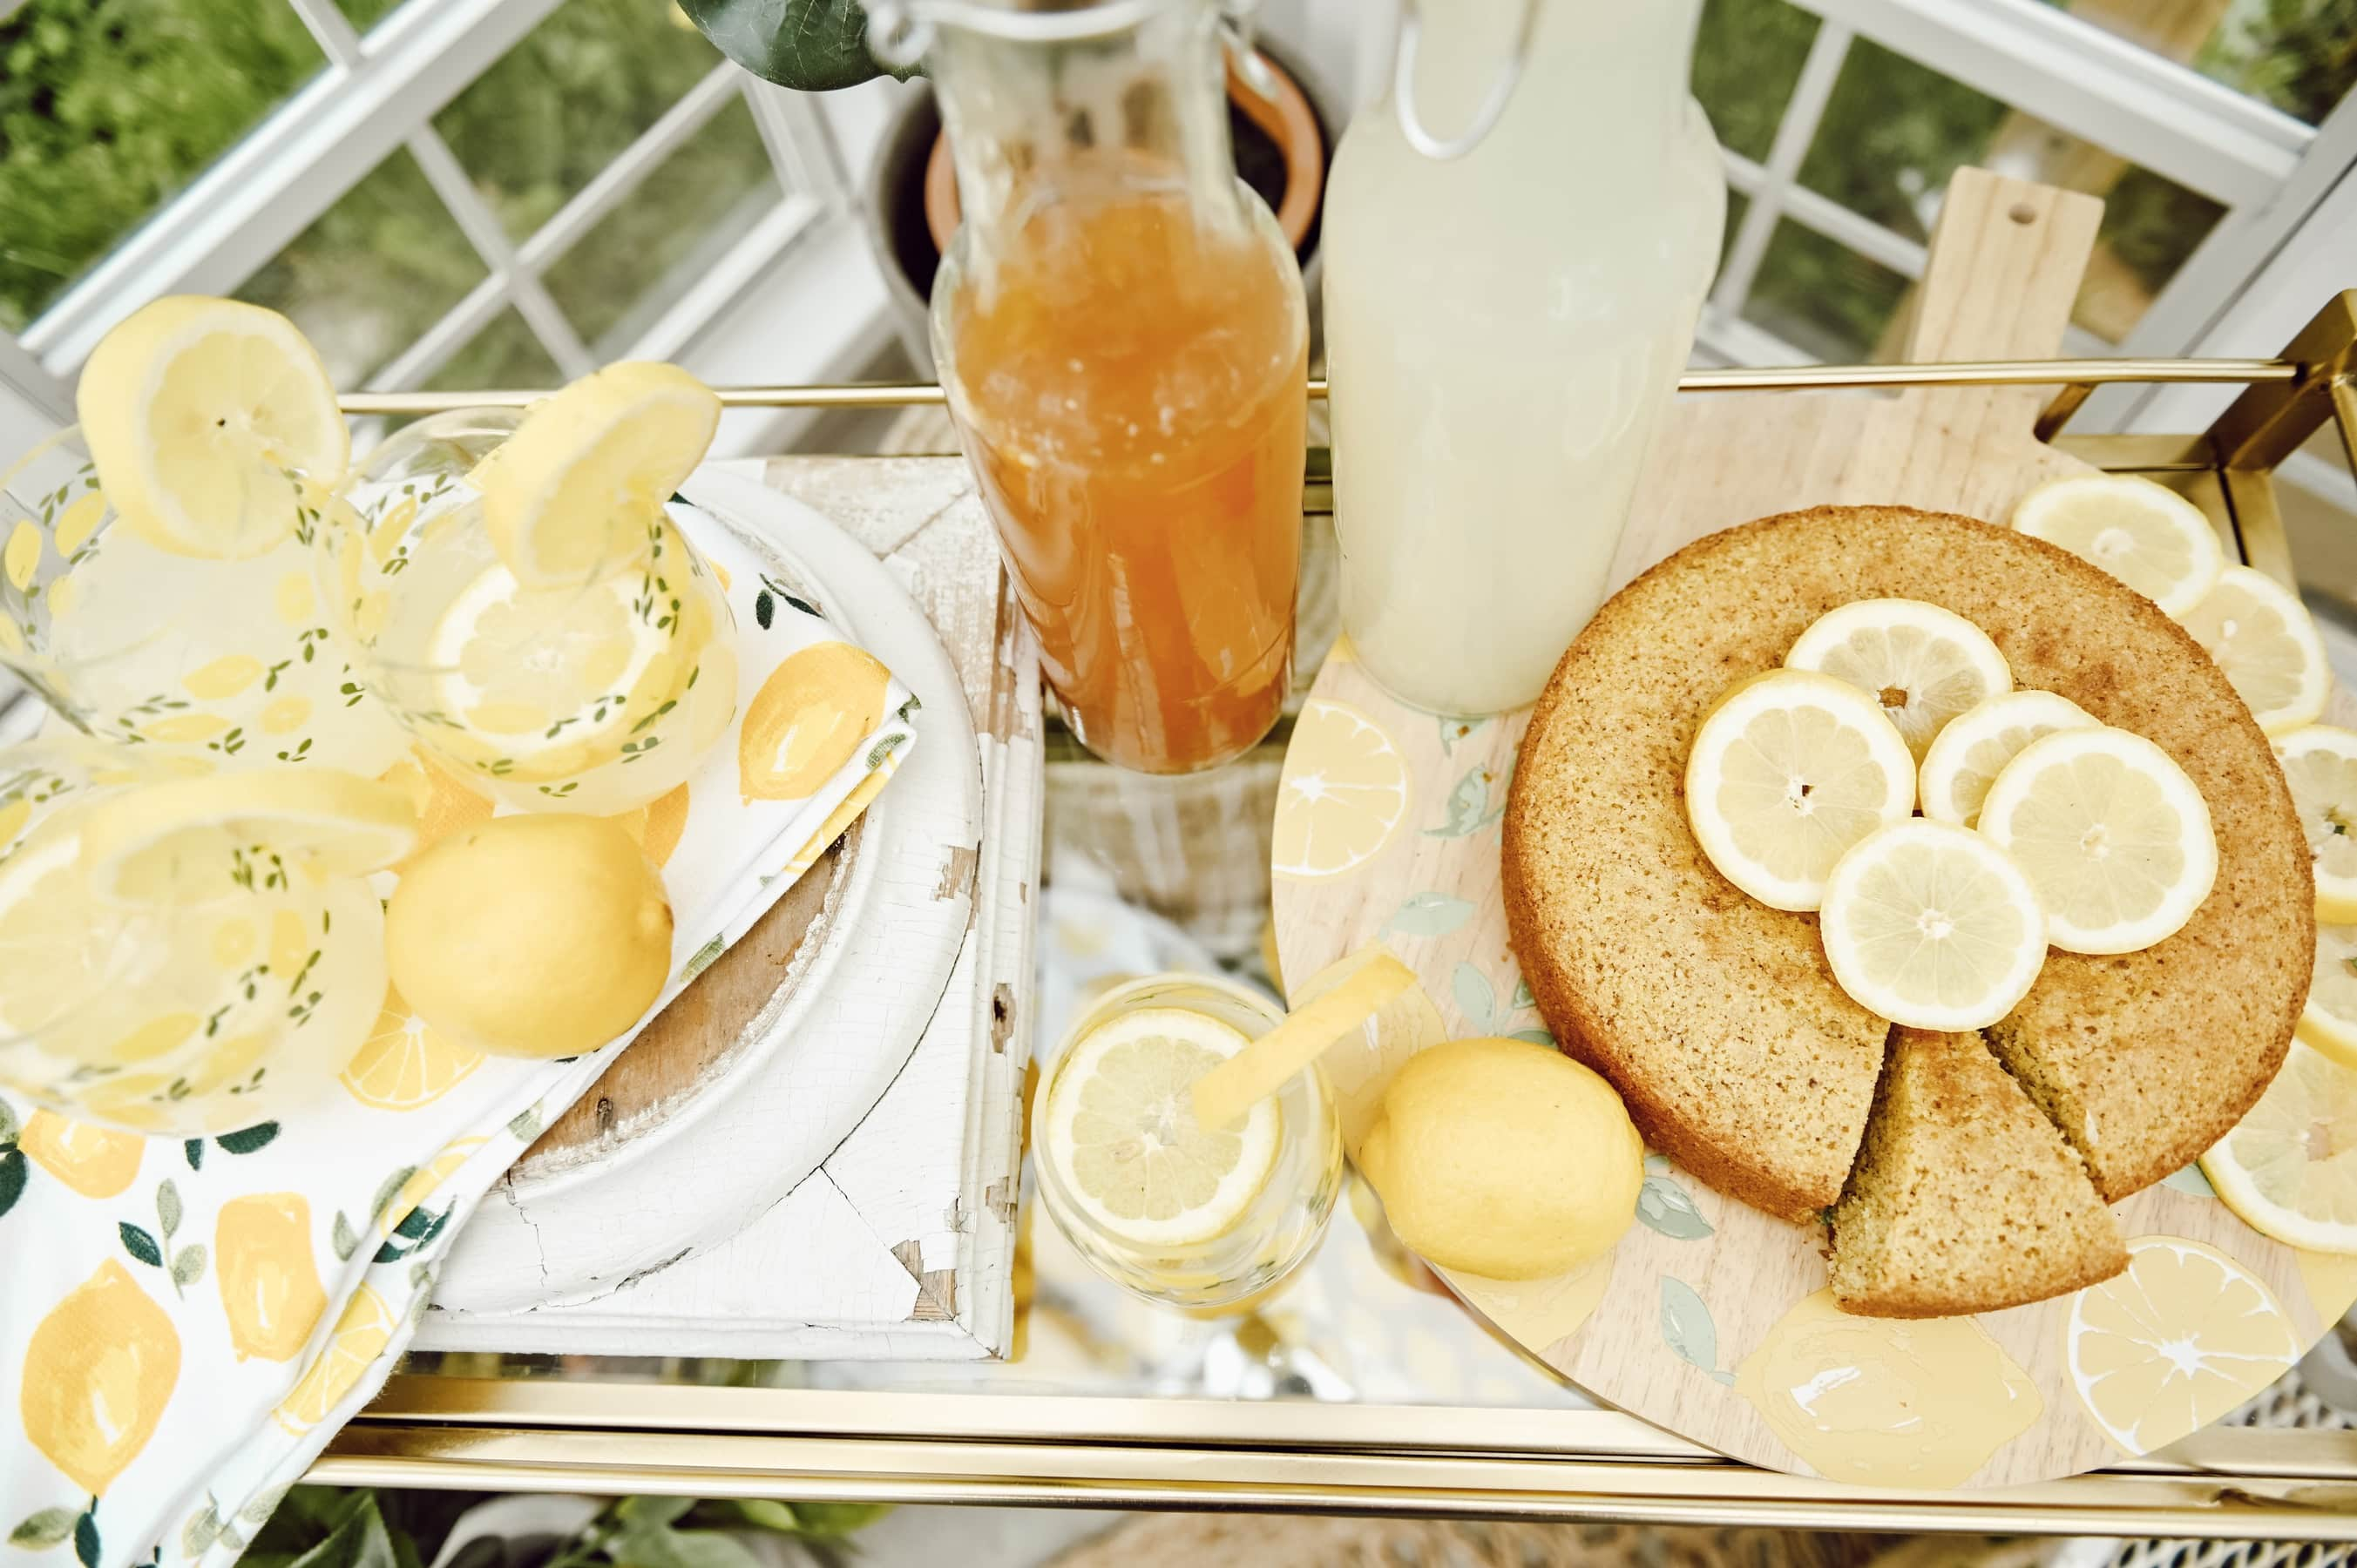 Lemon themed party with drinks, lemon cake, and lemons